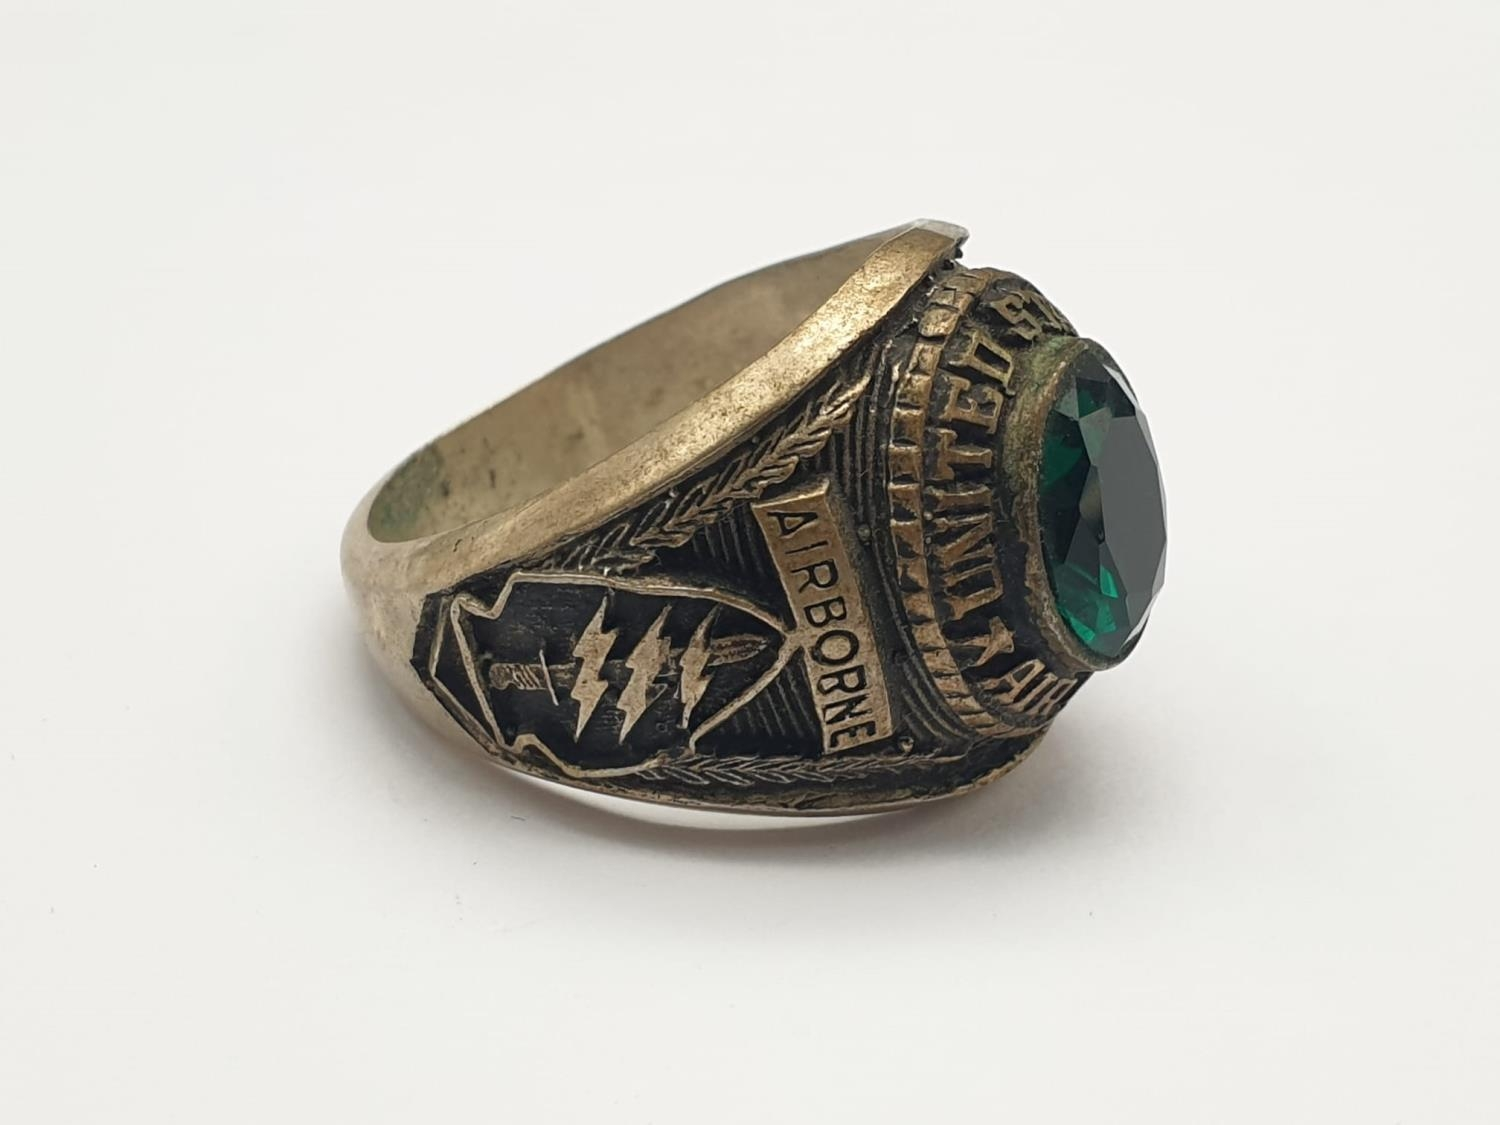 Vietnam War Era White Metal Special Forces Class Ring. UK Size X, US Size 11 ¾. - Image 2 of 6